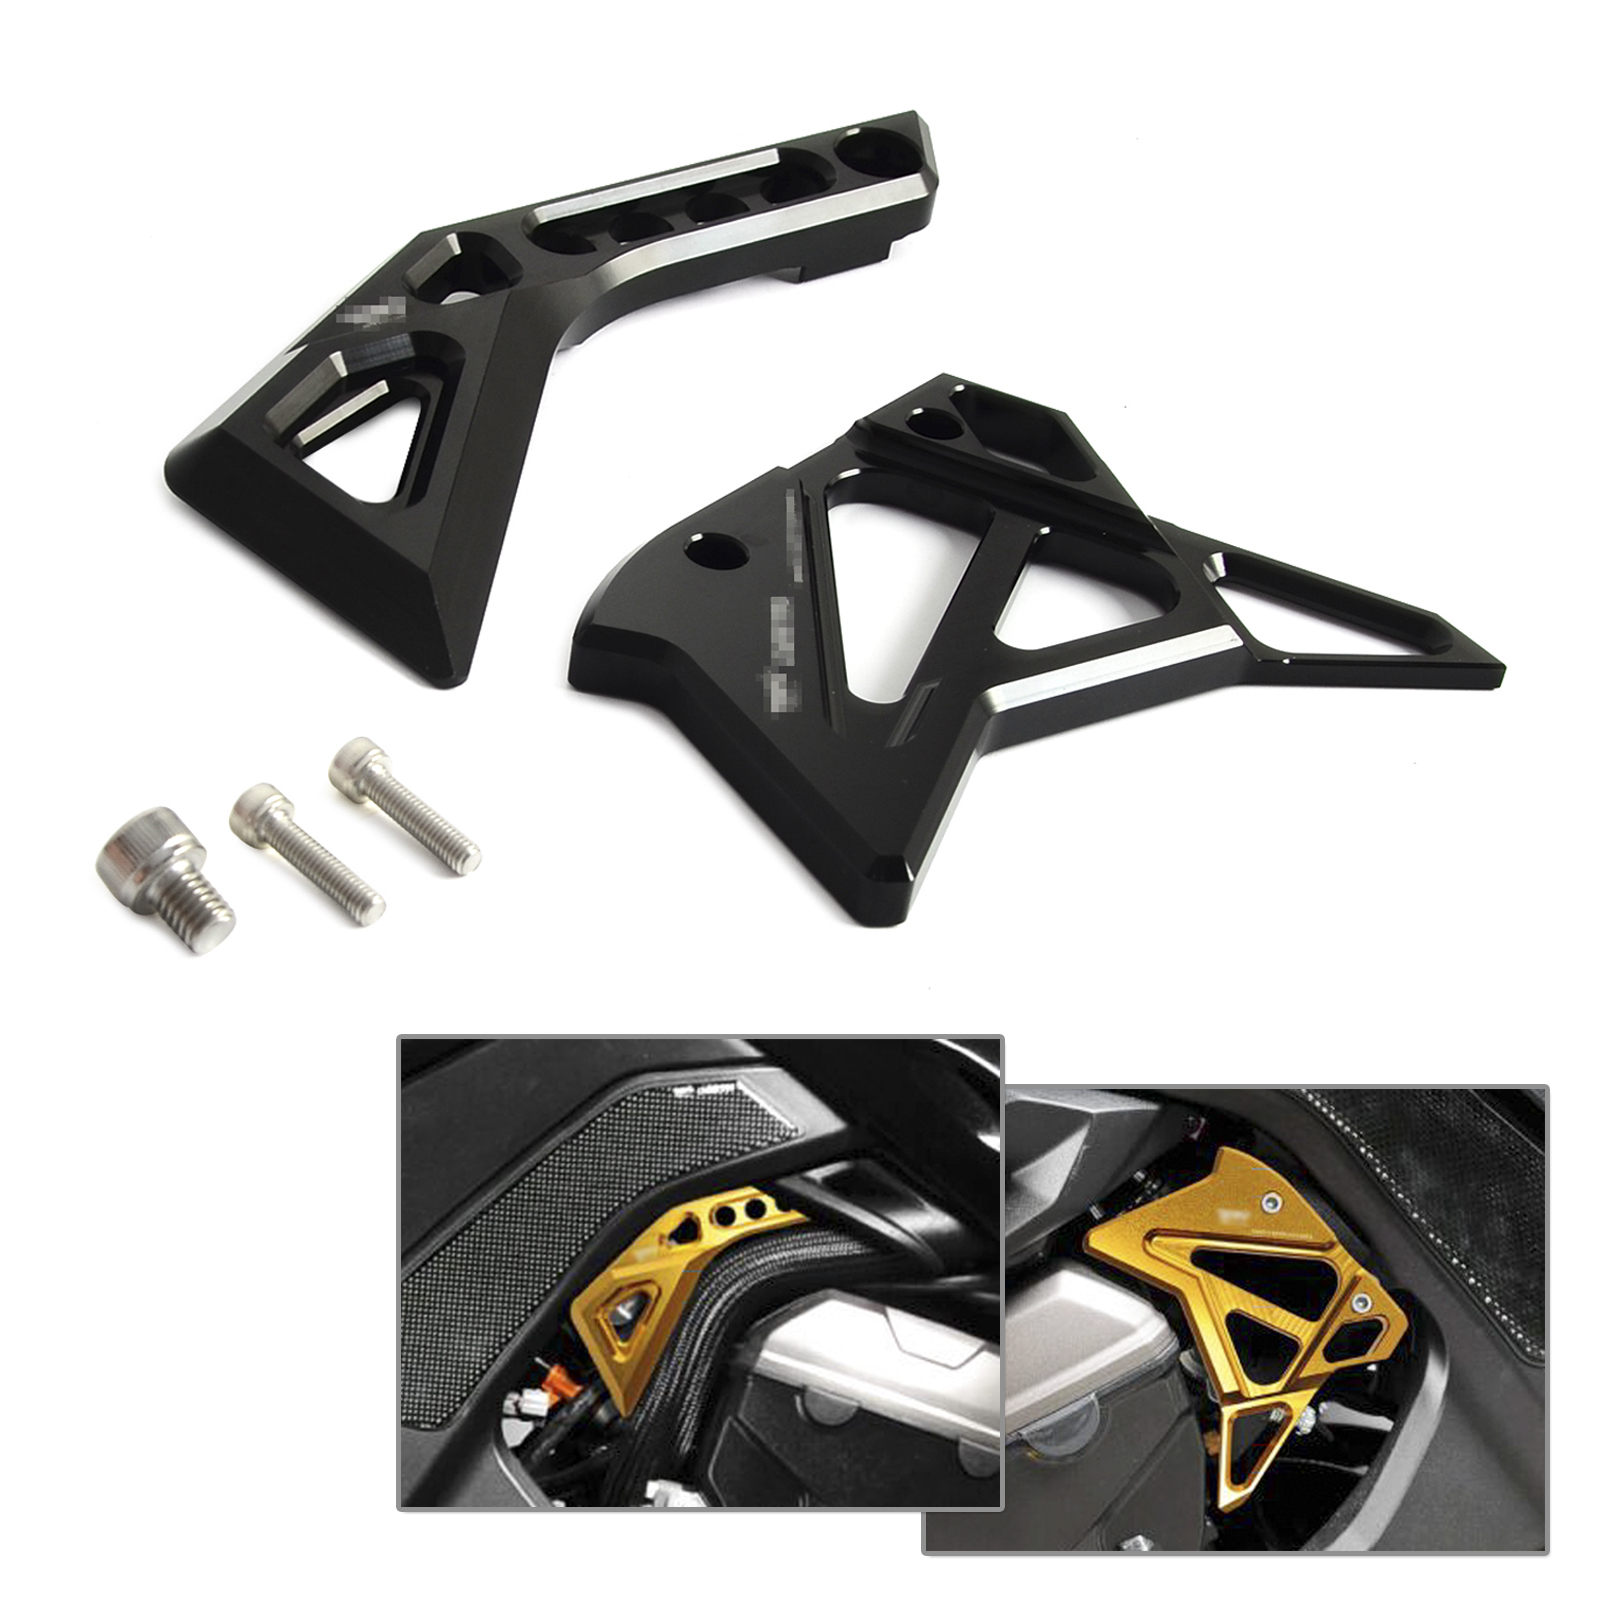 CNC Fuel Injection Jnjector Cover Guard For Kawasaki Z1000 2014 2015 2016 Z 1000 <br><br>Aliexpress